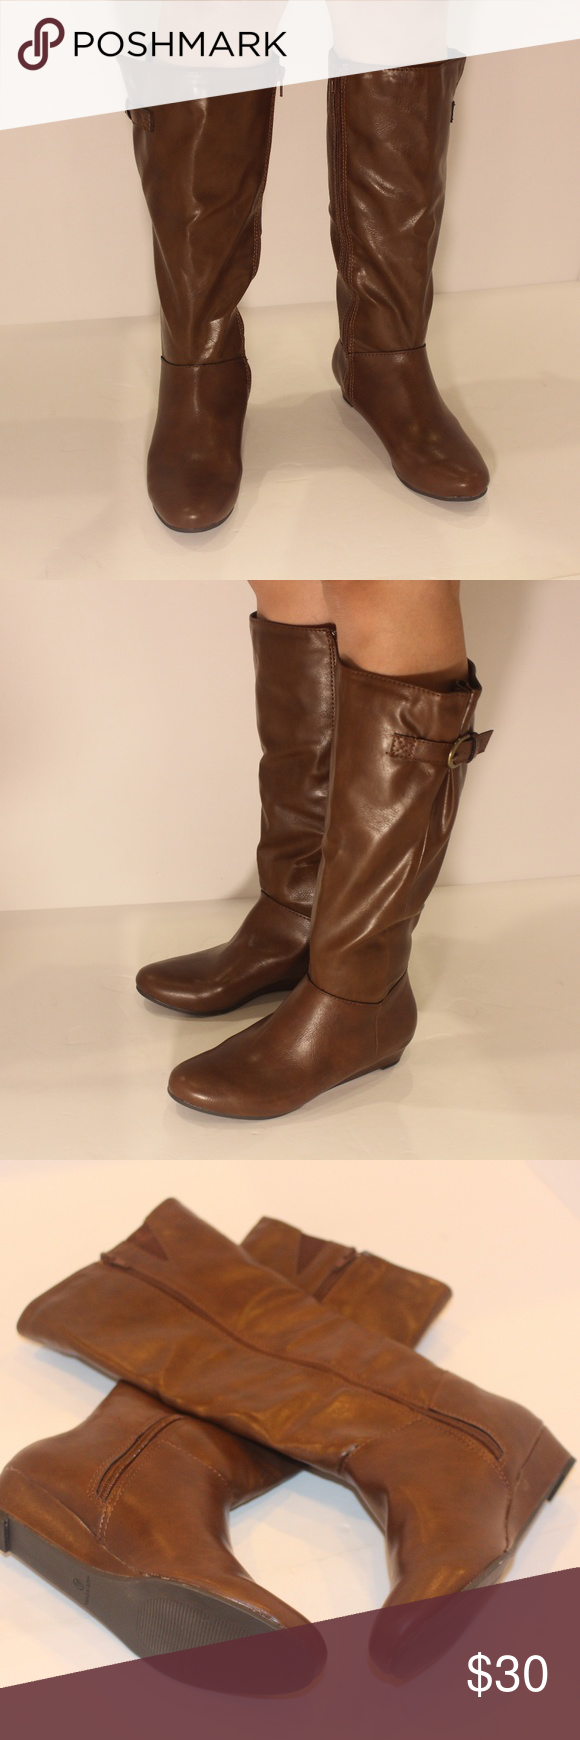 4805d667b283 STYLE  amp  CO RAINNE Women Mid Calf Boots COGNAC New in Box! Product  Details